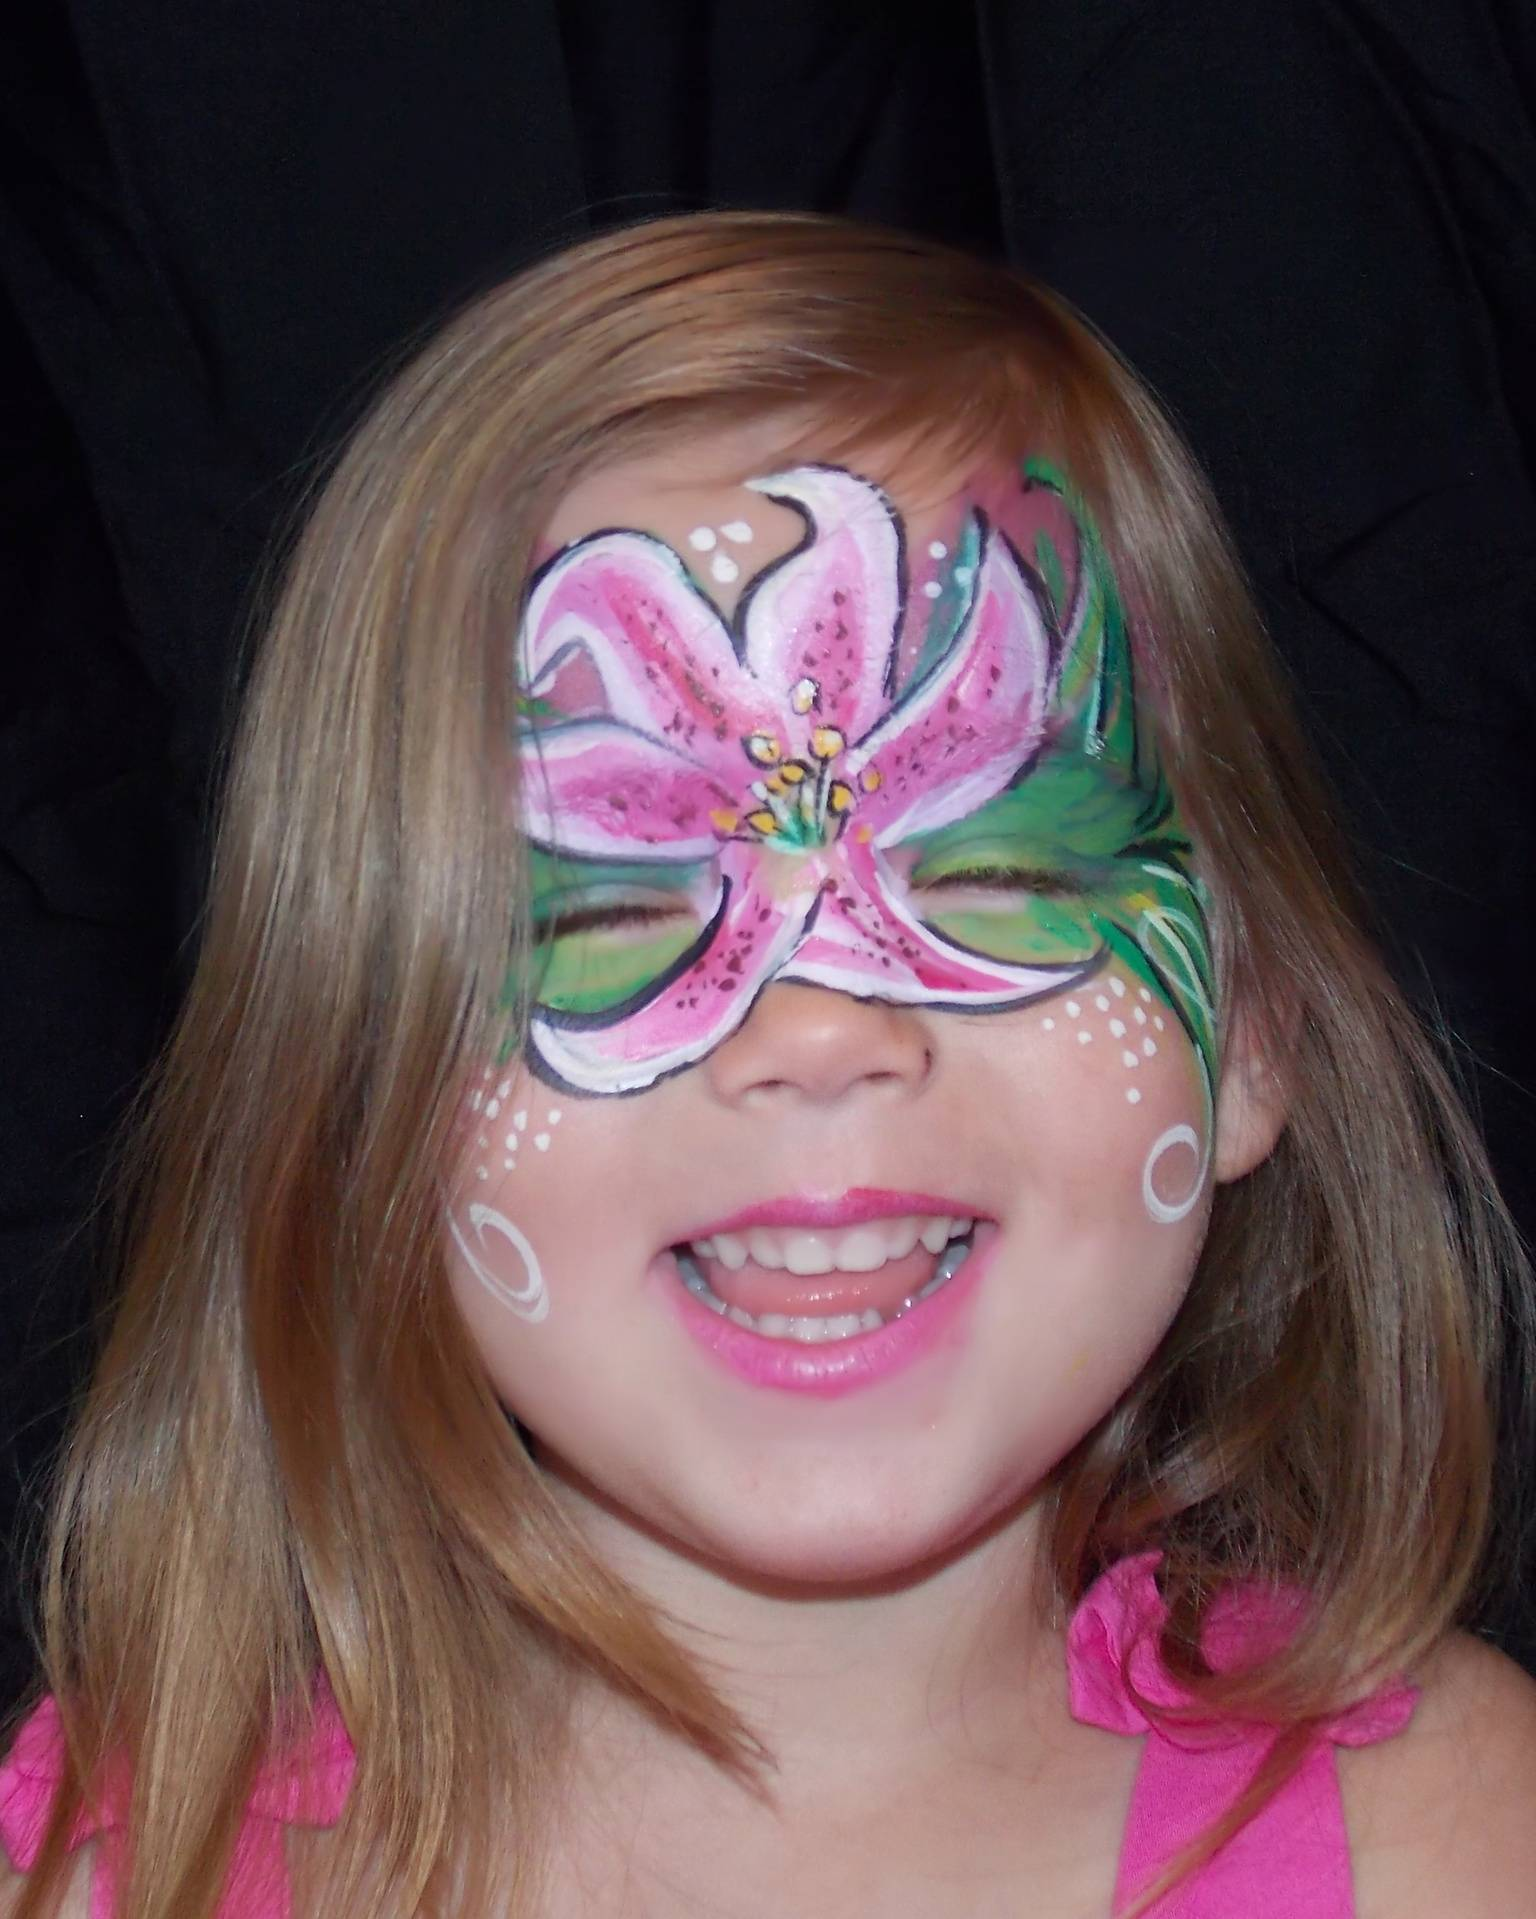 Face Painting is so funny